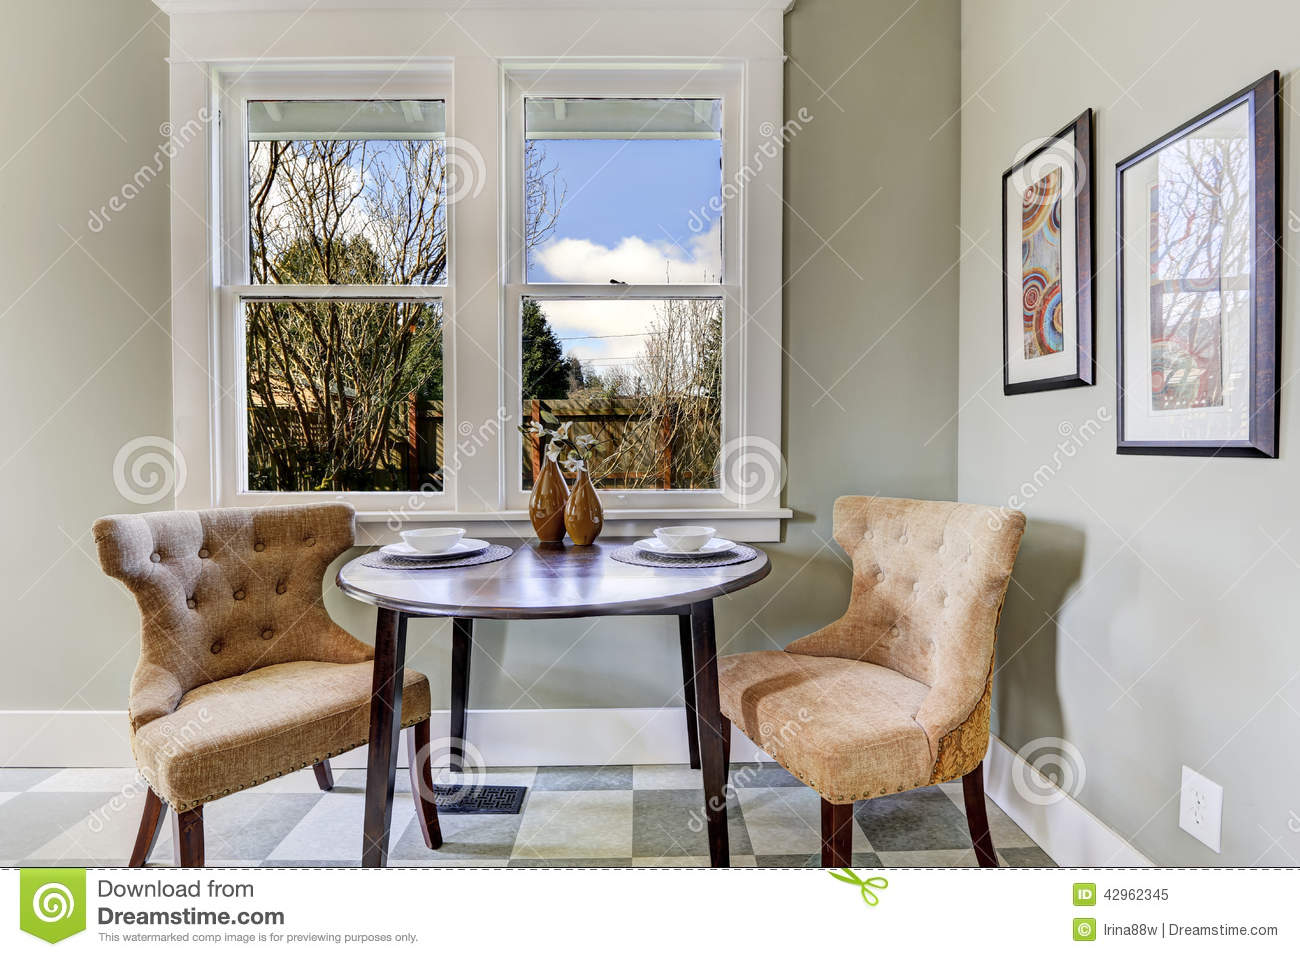 Small dining area in kitchen room stock photo image for Small dining room area